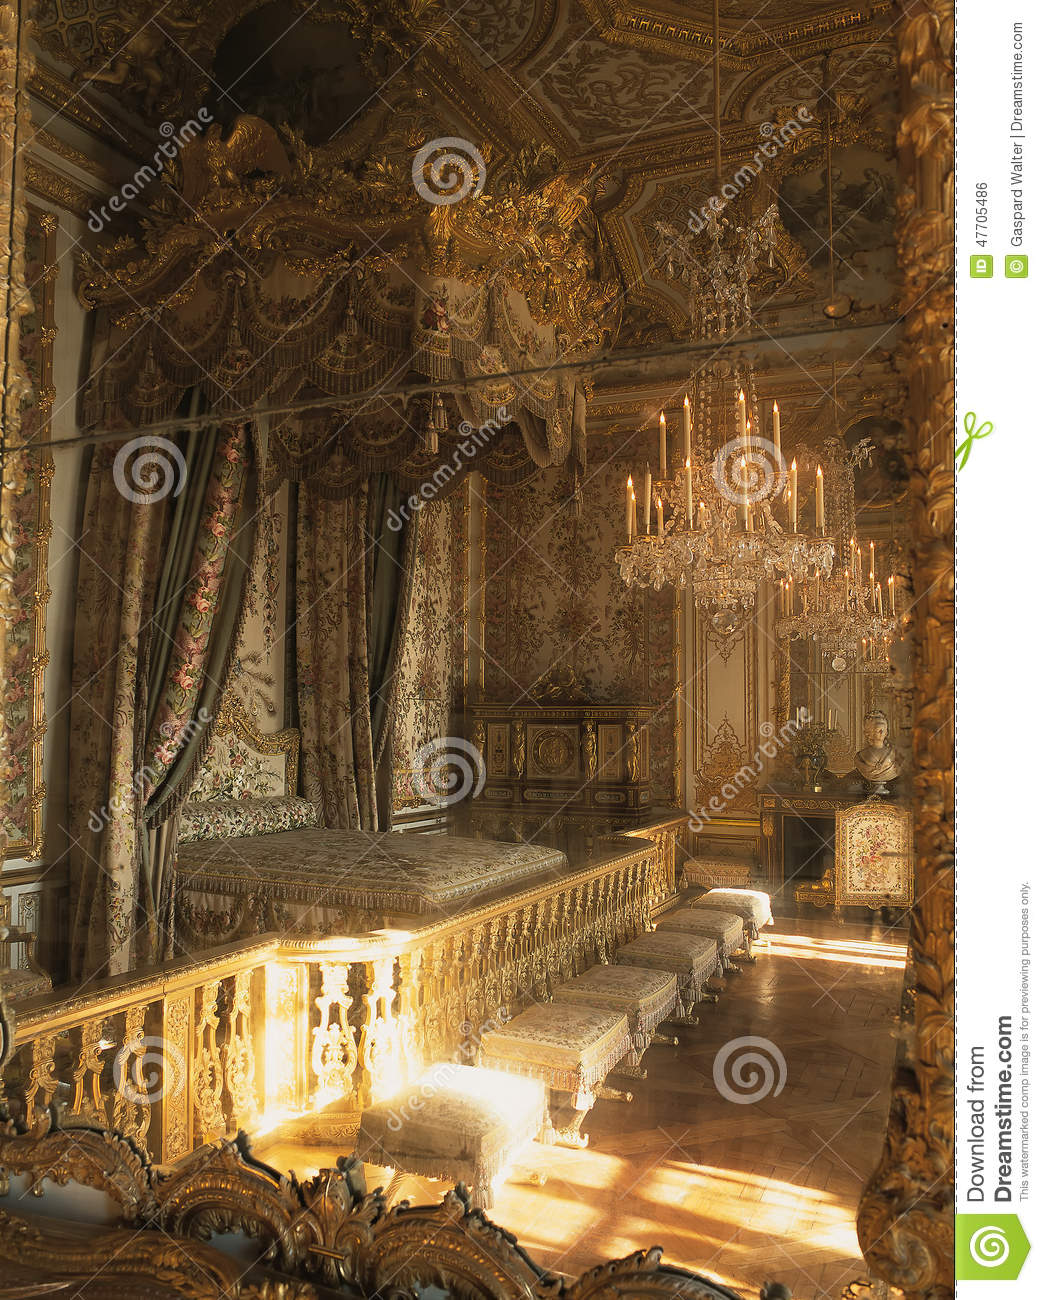 Peachy Queen Marie Antoinette Bedroom Reflection In Mirror At Home Interior And Landscaping Palasignezvosmurscom